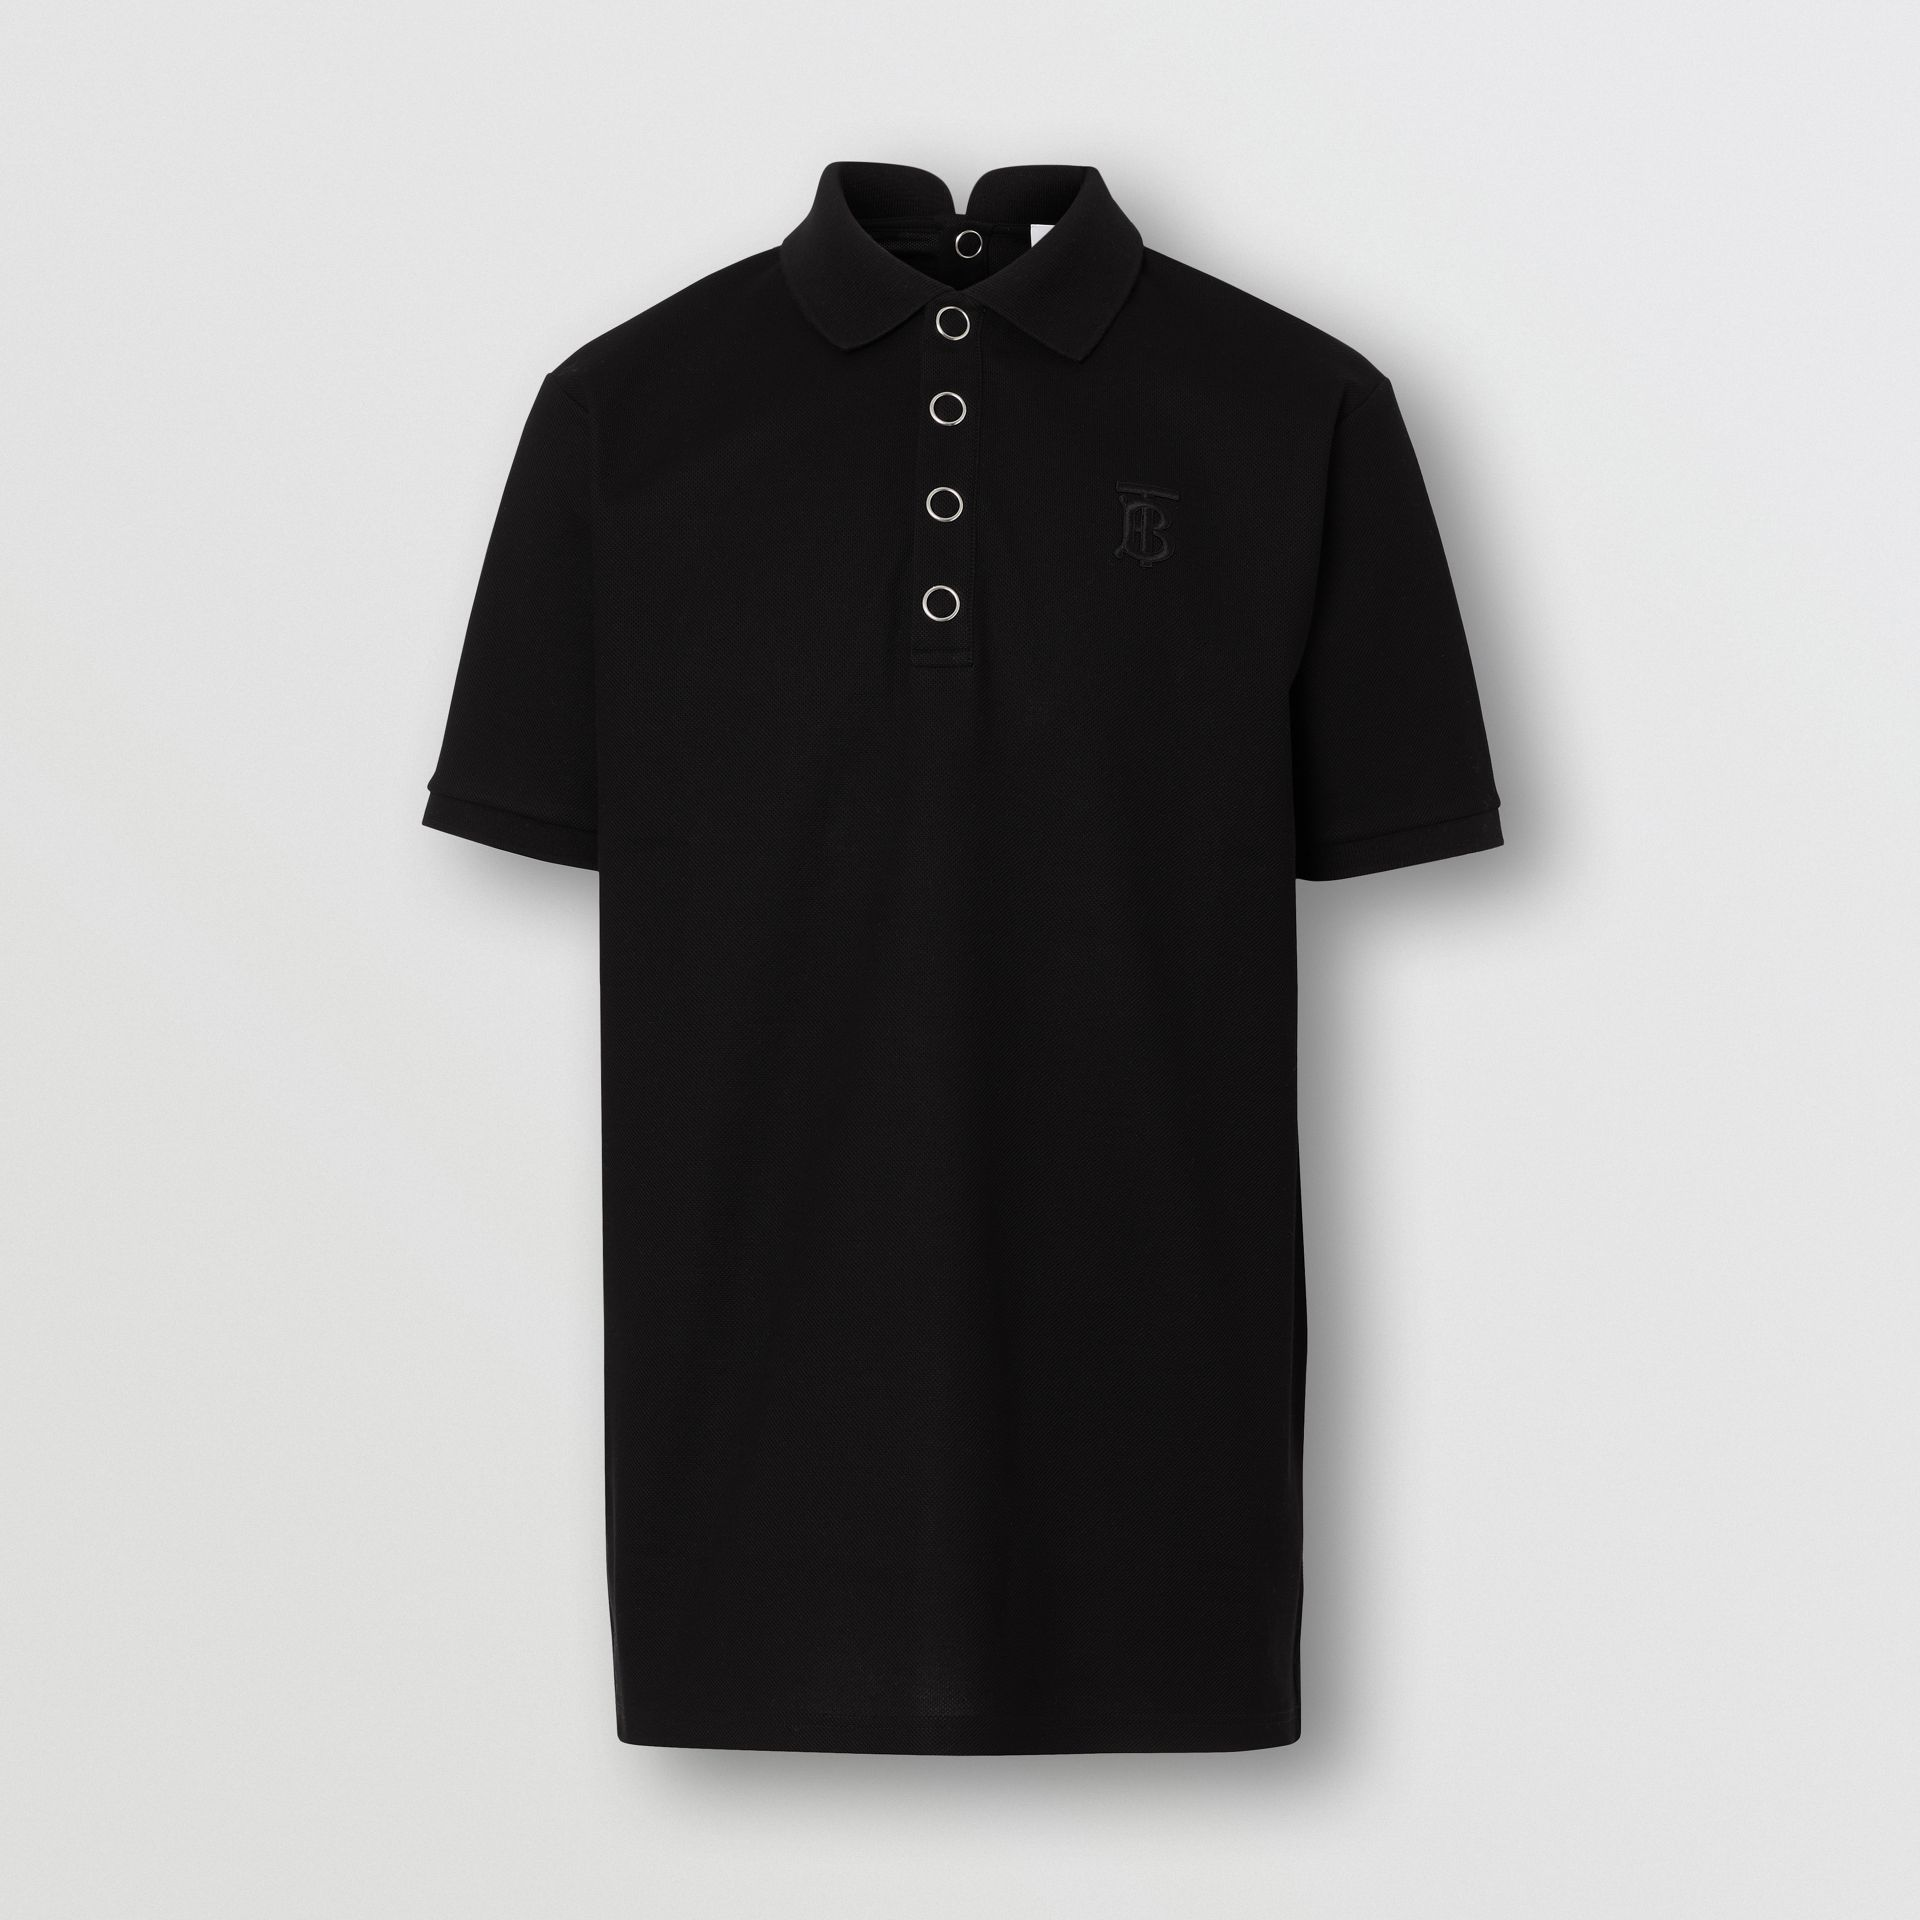 Monogram Motif Cotton Piqué Polo Shirt in Black | Burberry Hong Kong - gallery image 3